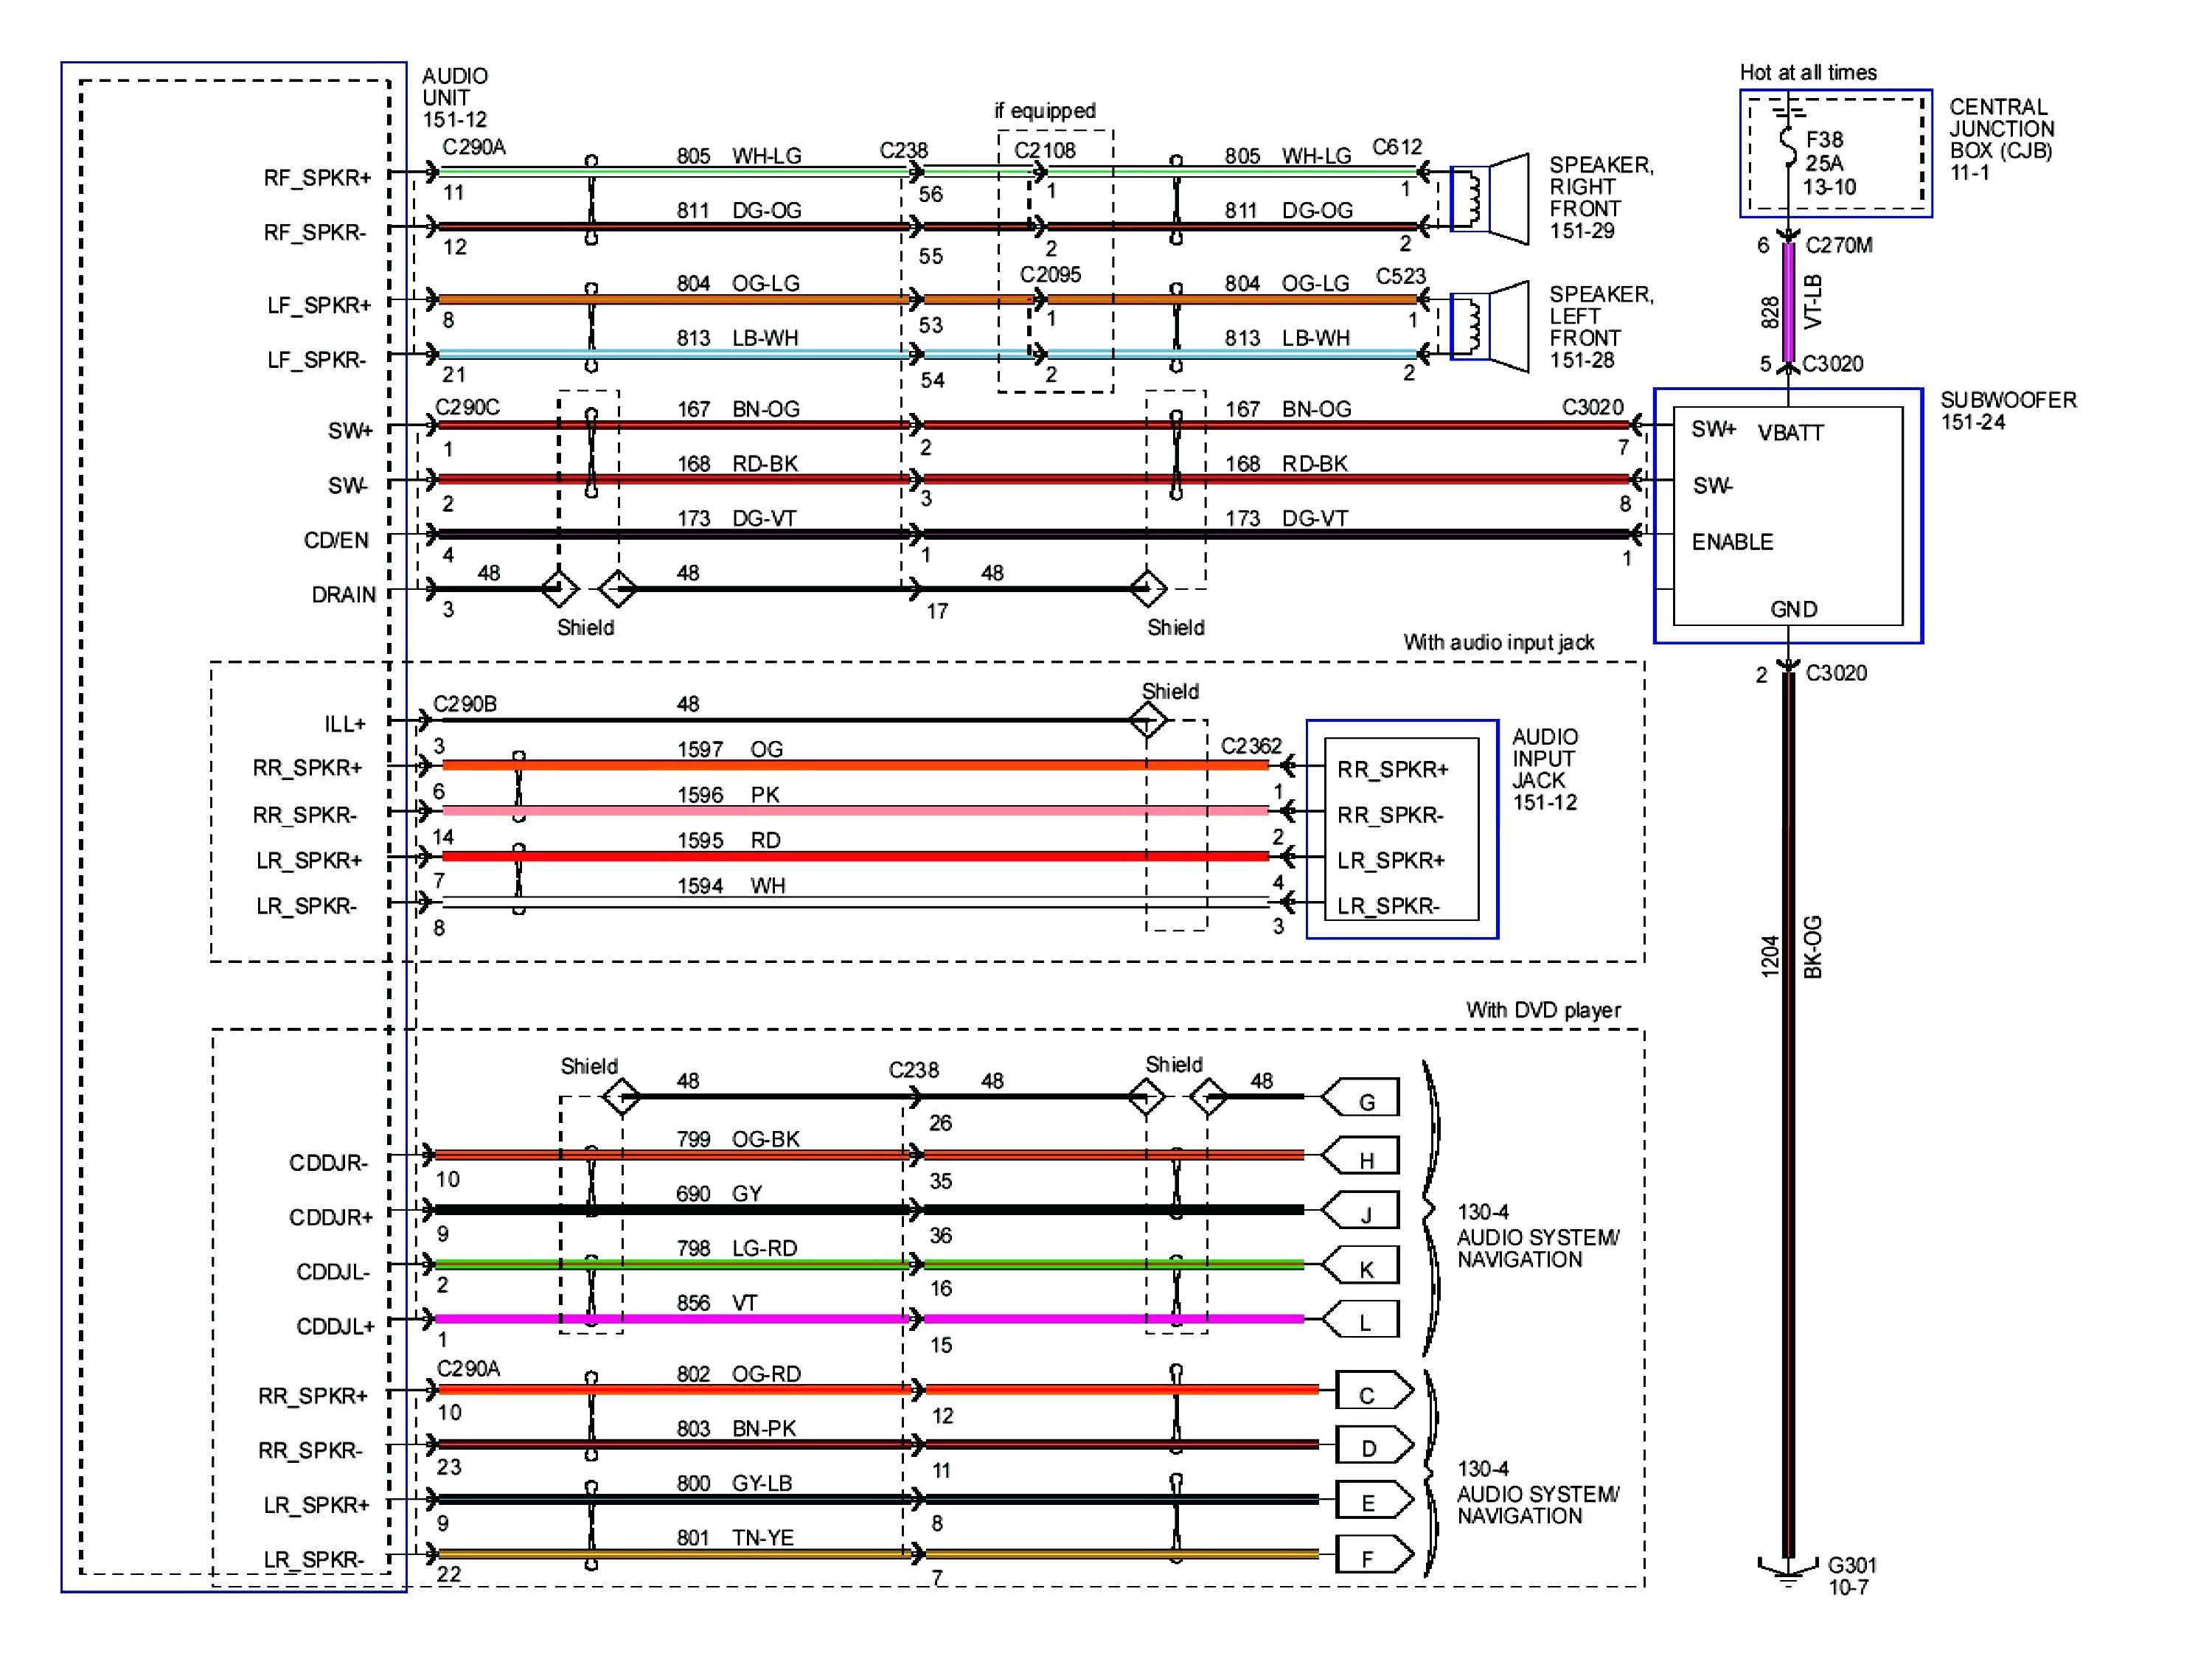 Ford Stereo Wiring Diagrams - Wiring Diagram Data - 2005 Ford Explorer Radio Wiring Diagram